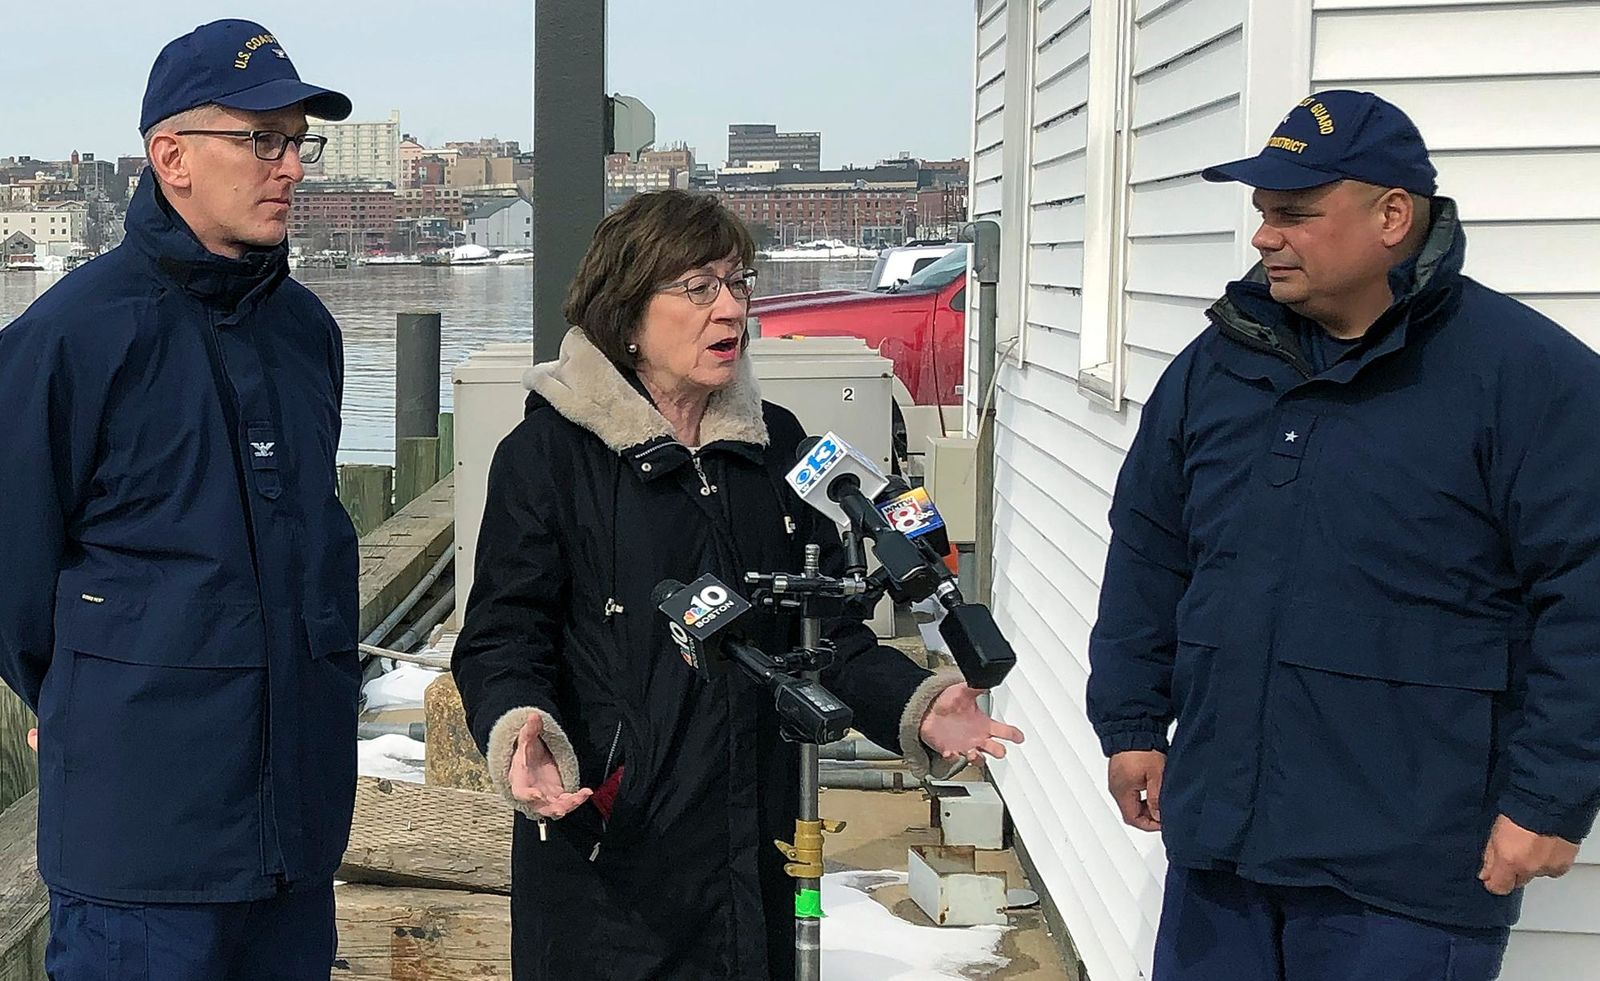 FILE - In this Feb. 20, 2019, file photo, Sen. Susan Collins, R-Maine, is flanked by Coast Guard Capt. Brian LeFebvre, left, and Rear Adm. Andrew Tiongson, right, as she addresses reporters after the ribbon-cutting at a U.S. Coast Guard regional command center in South Portland, Maine. (AP Photo/David Sharp, File)